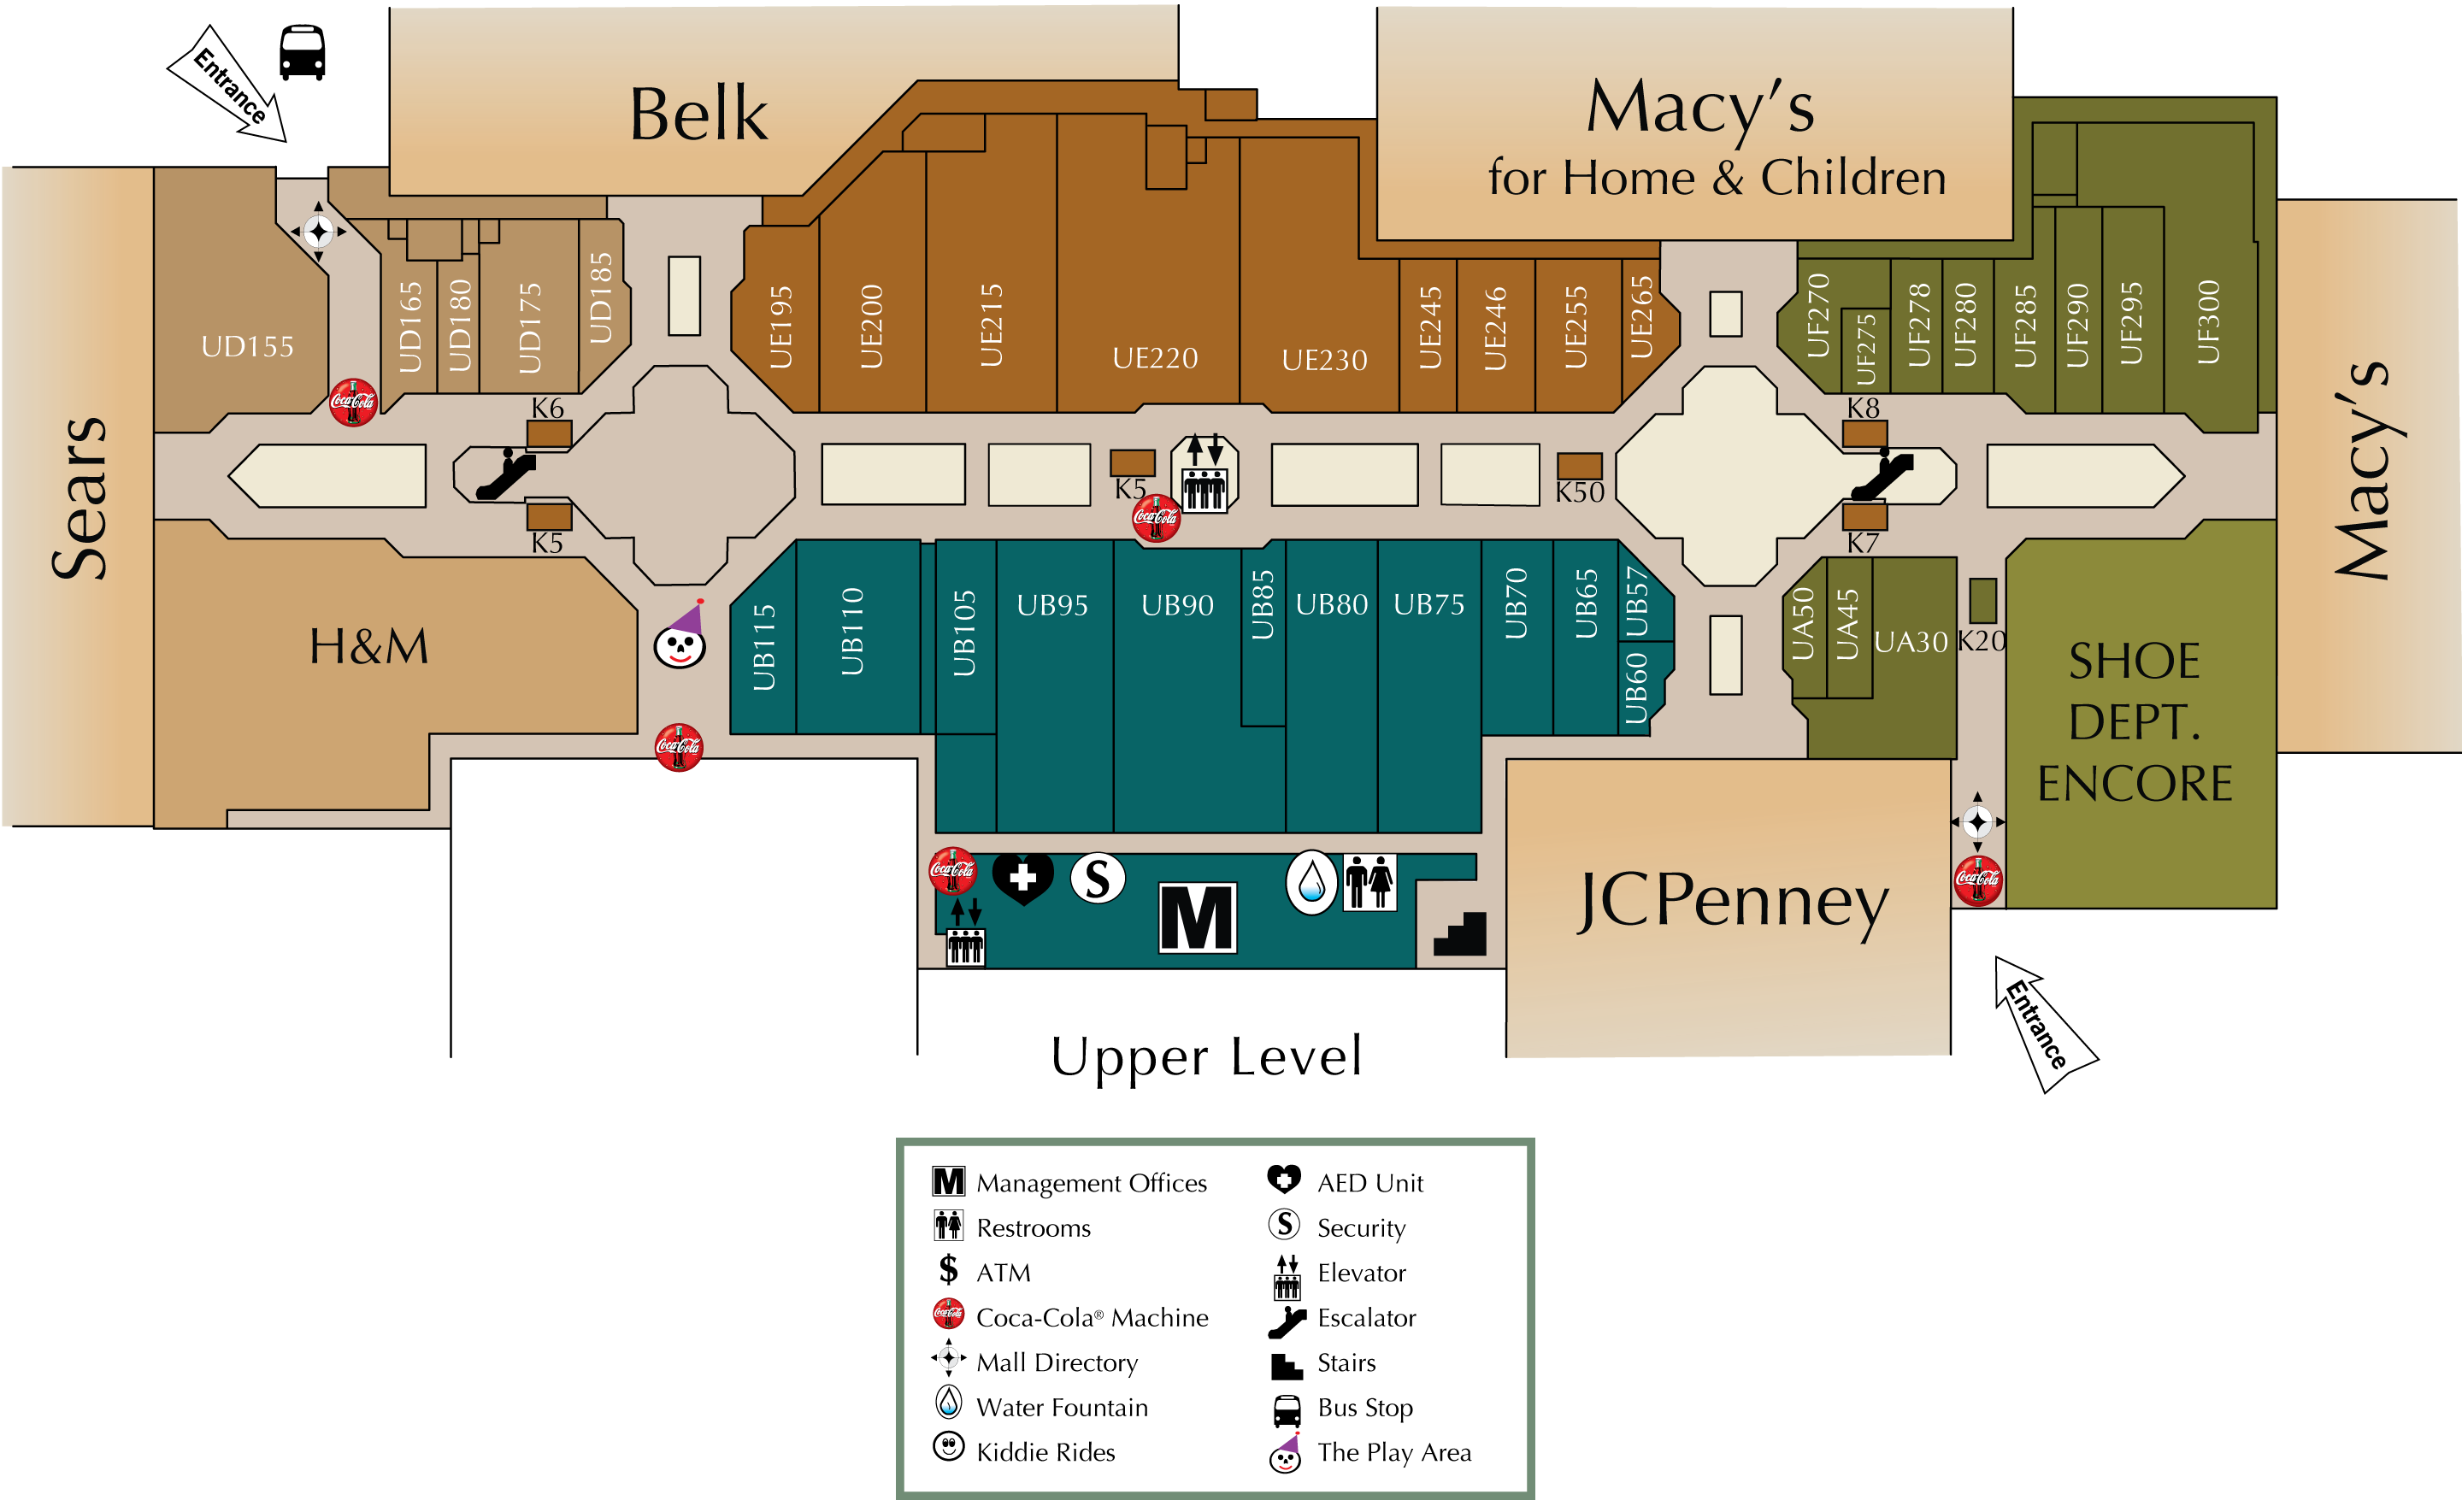 Mall Directory | Valley View Mall on